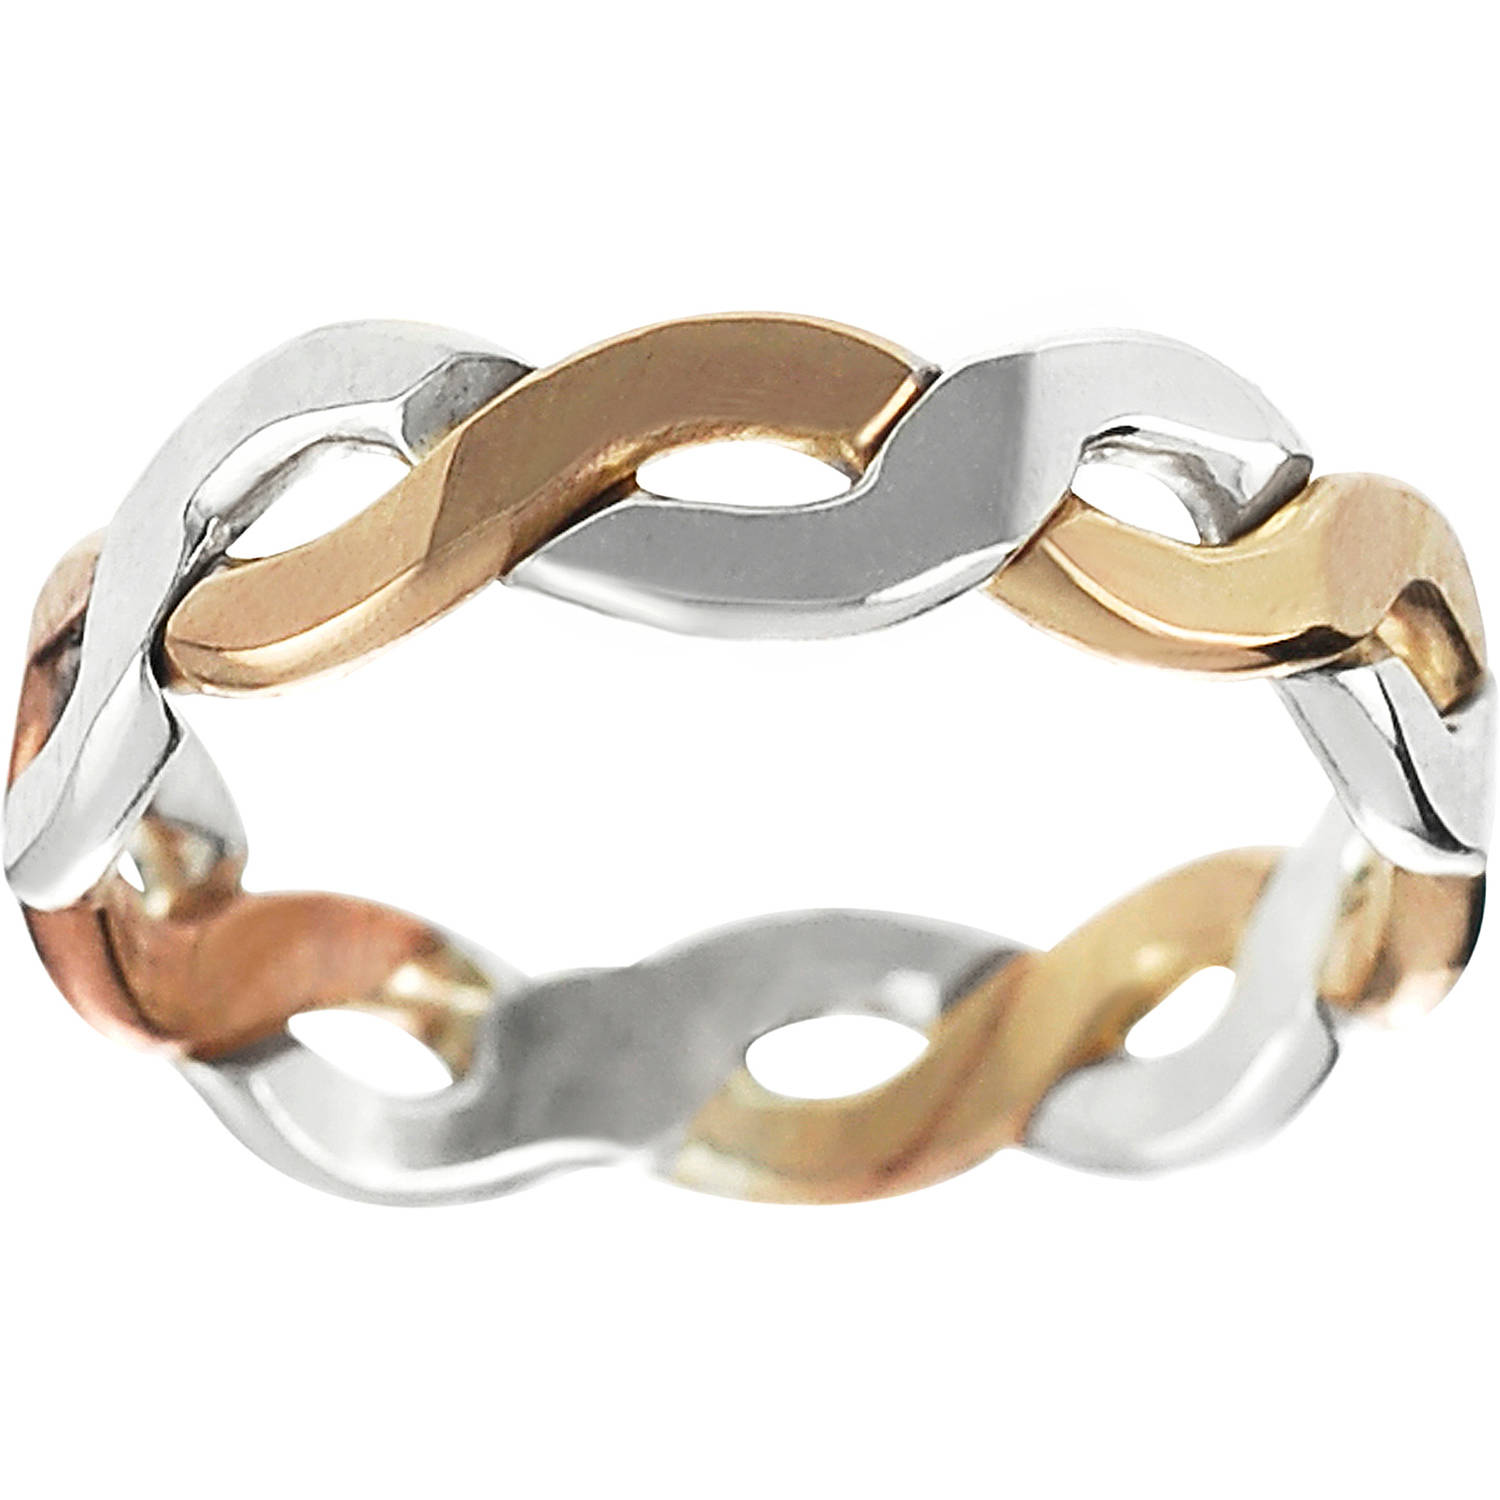 Brinley Co. Women's Sterling Silver Two-Tone Braided Band, 4.5mm